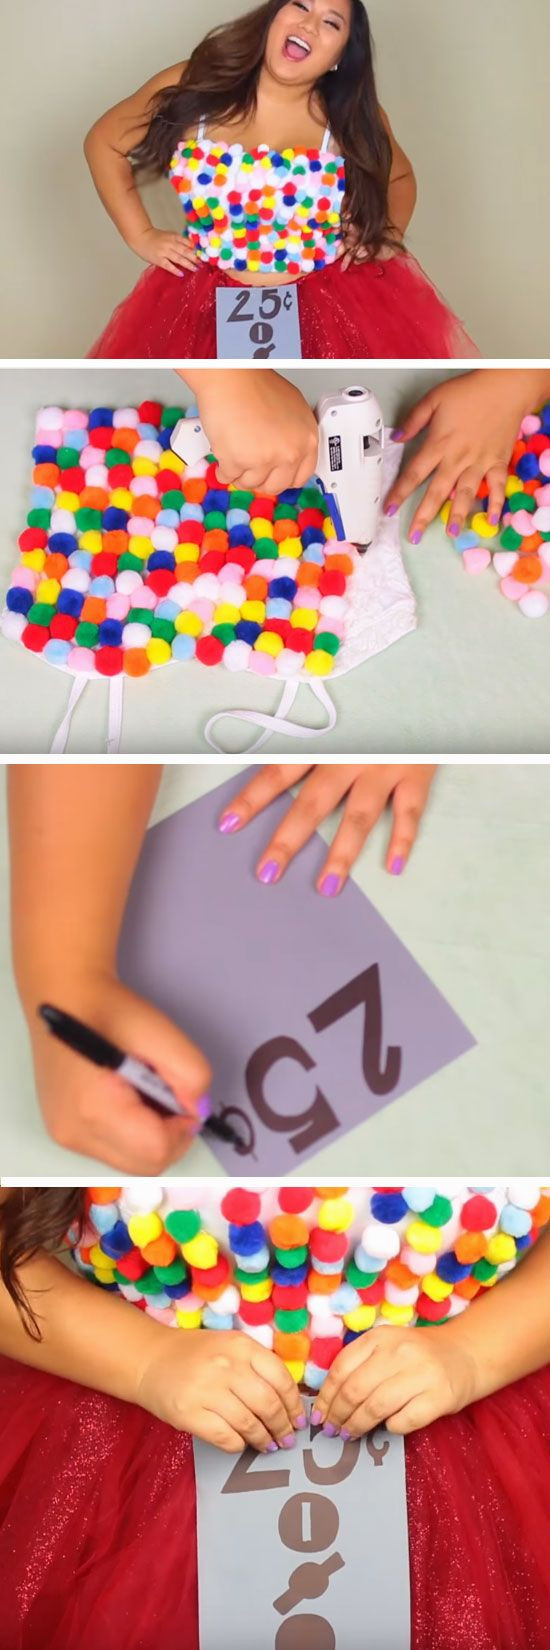 Best ideas about DIY Halloween Costumes Girls . Save or Pin Best 25 Diy halloween costumes ideas on Pinterest Now.